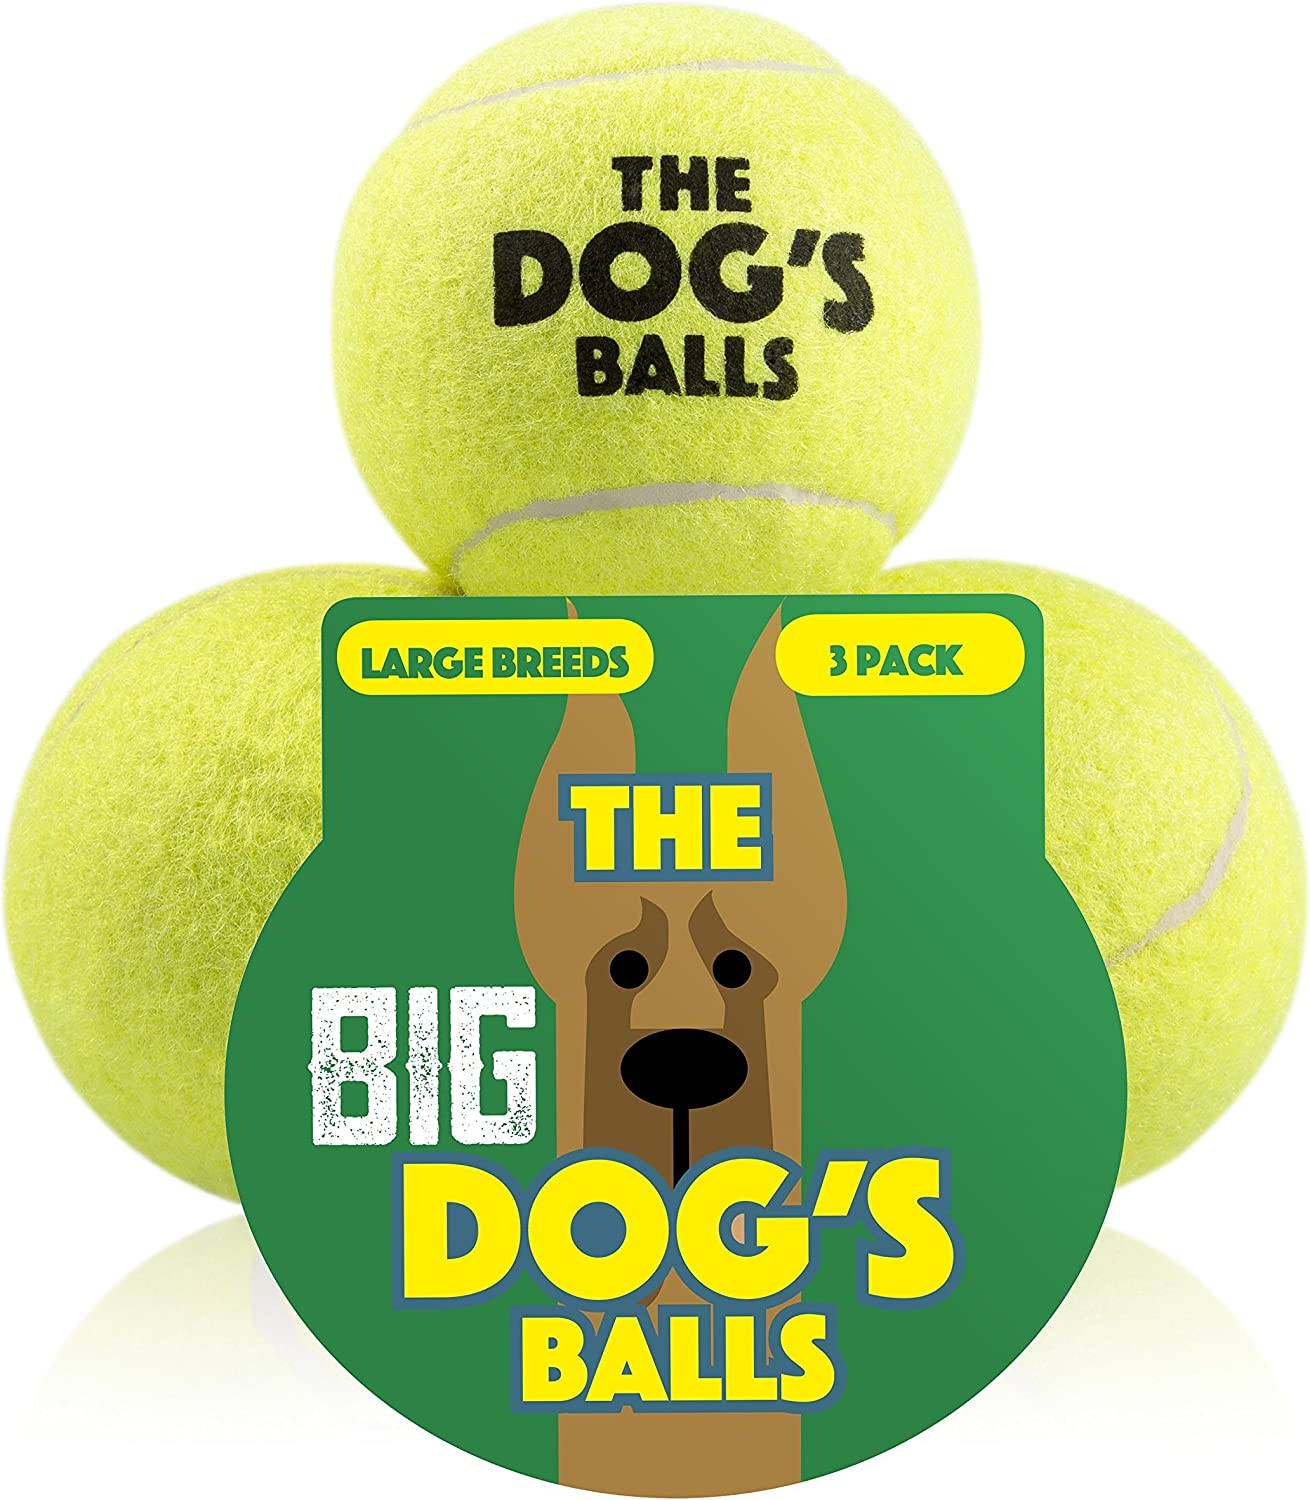 6x Yellow Standard Tennis Balls for Sports Outdoor Games Cricket Dog Play Toys